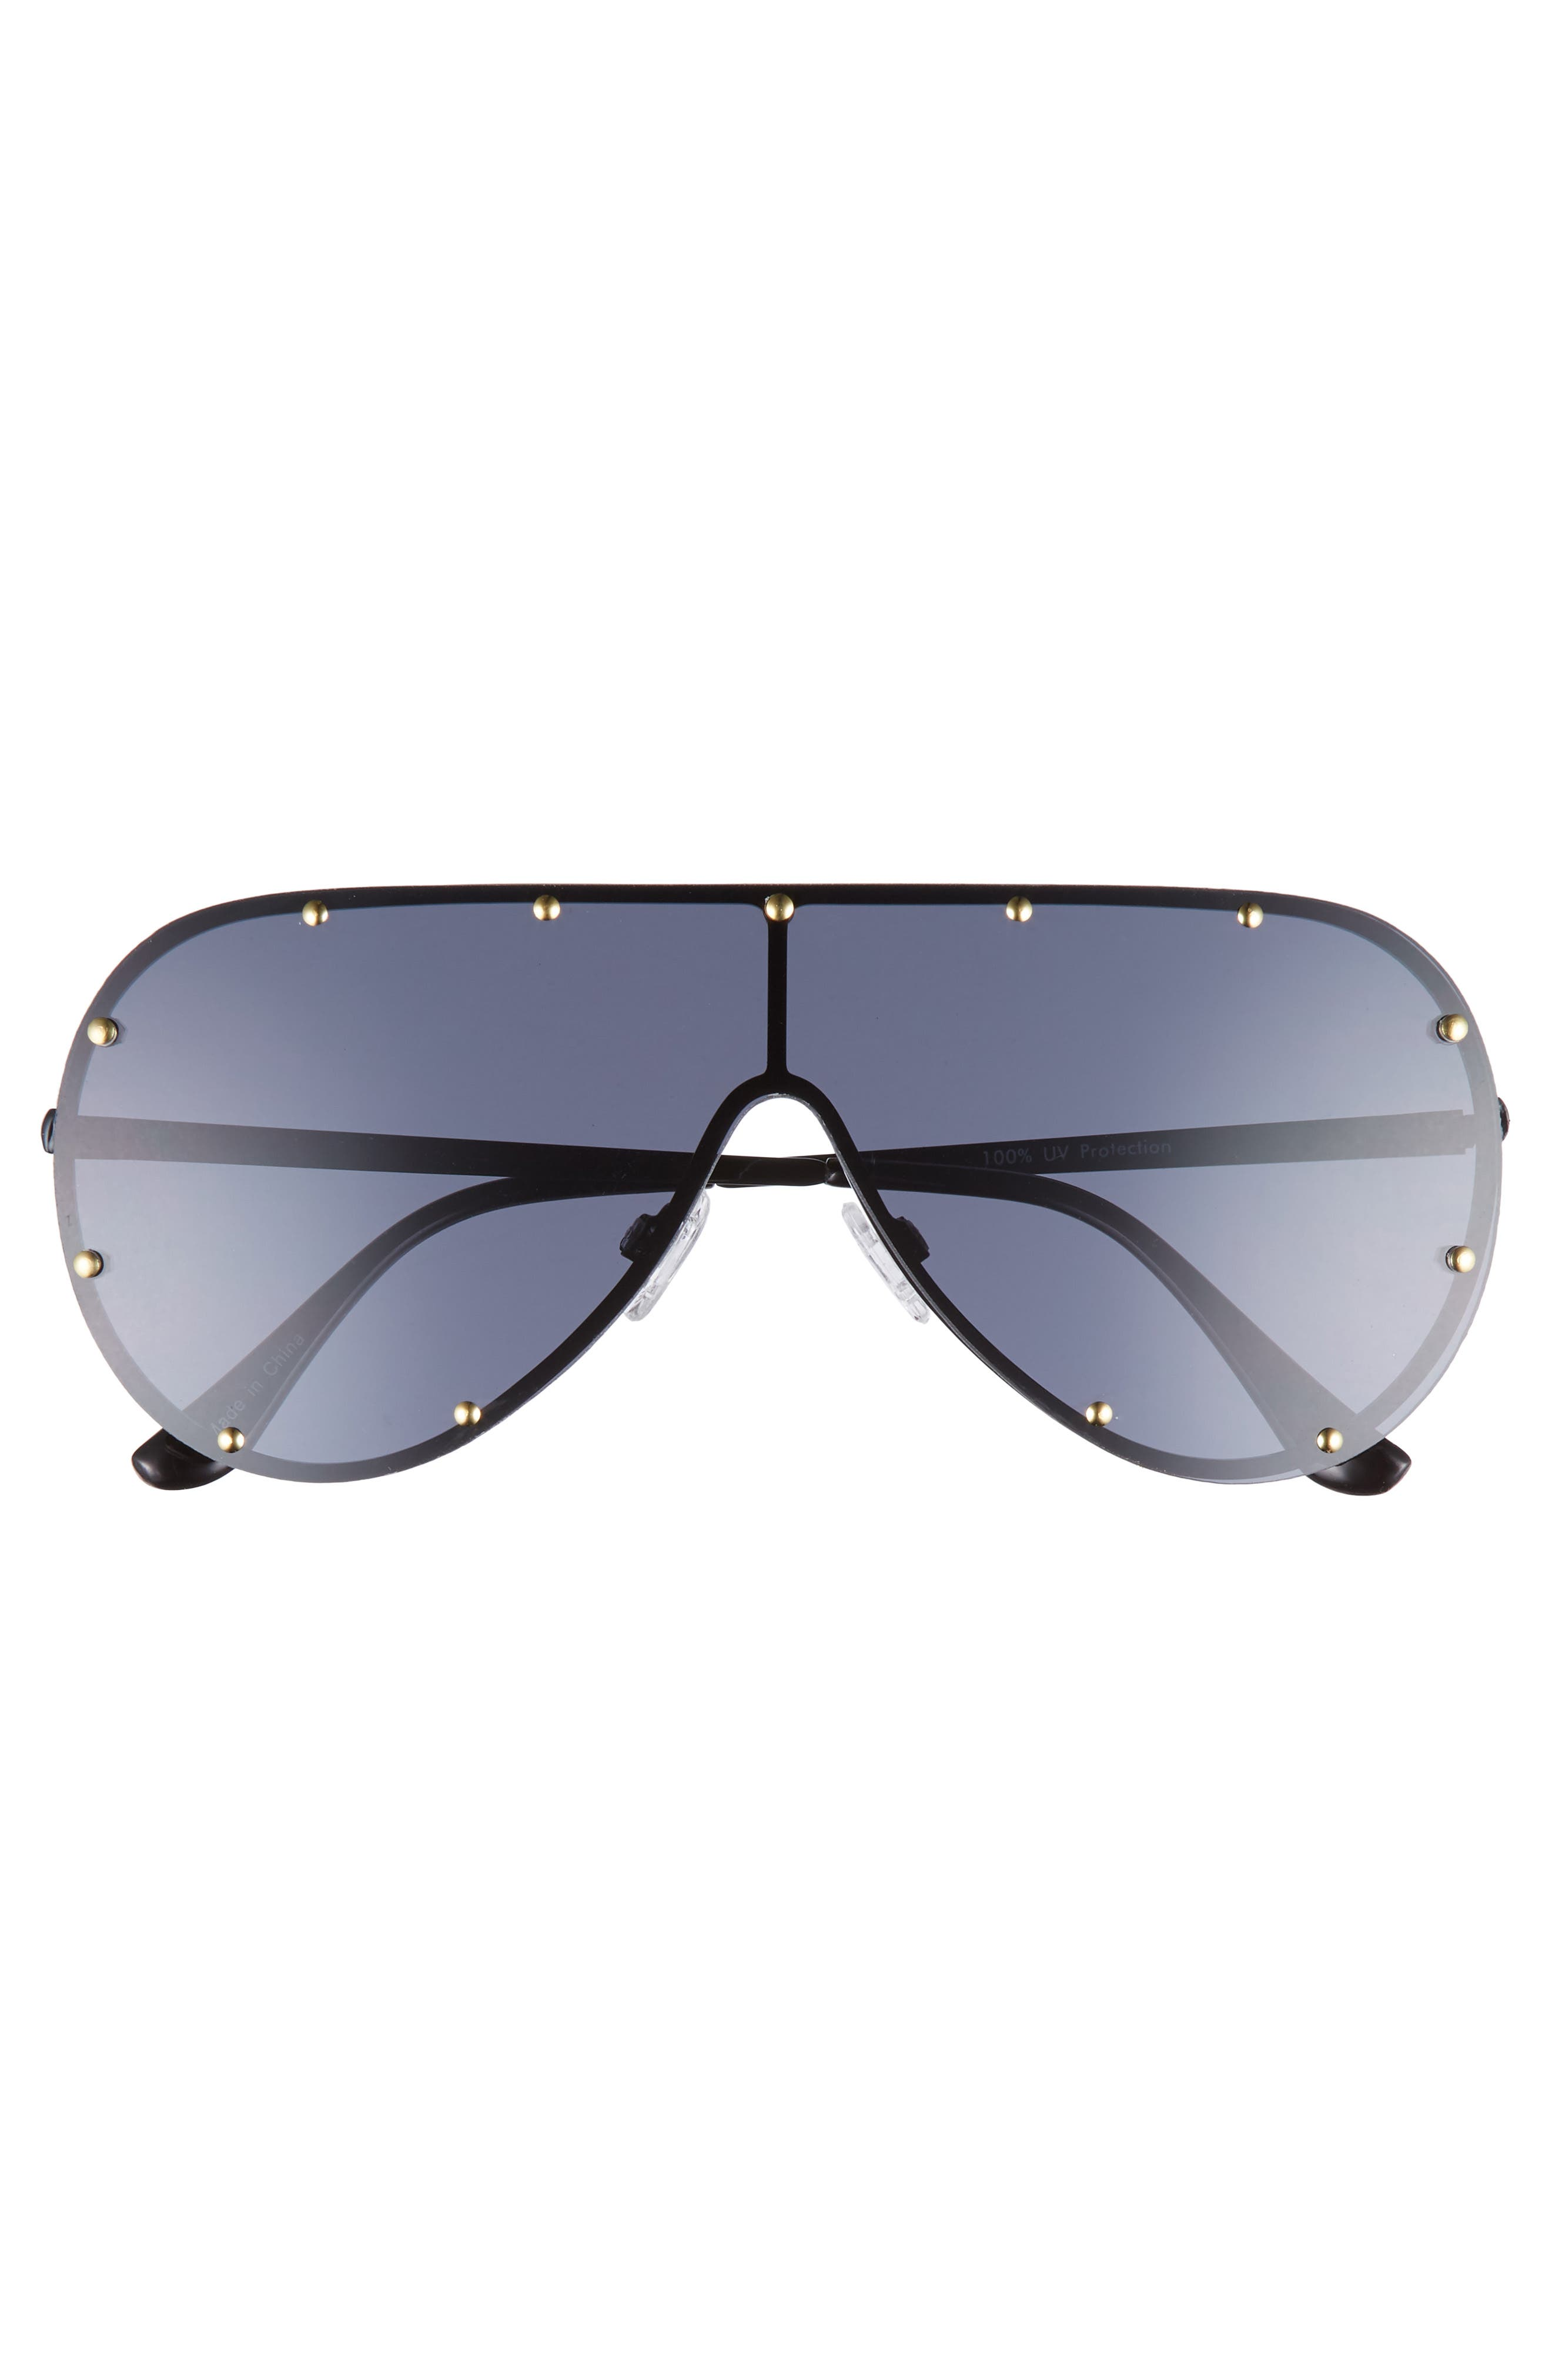 65mm Studded Shield Sunglasses,                             Alternate thumbnail 3, color,                             001